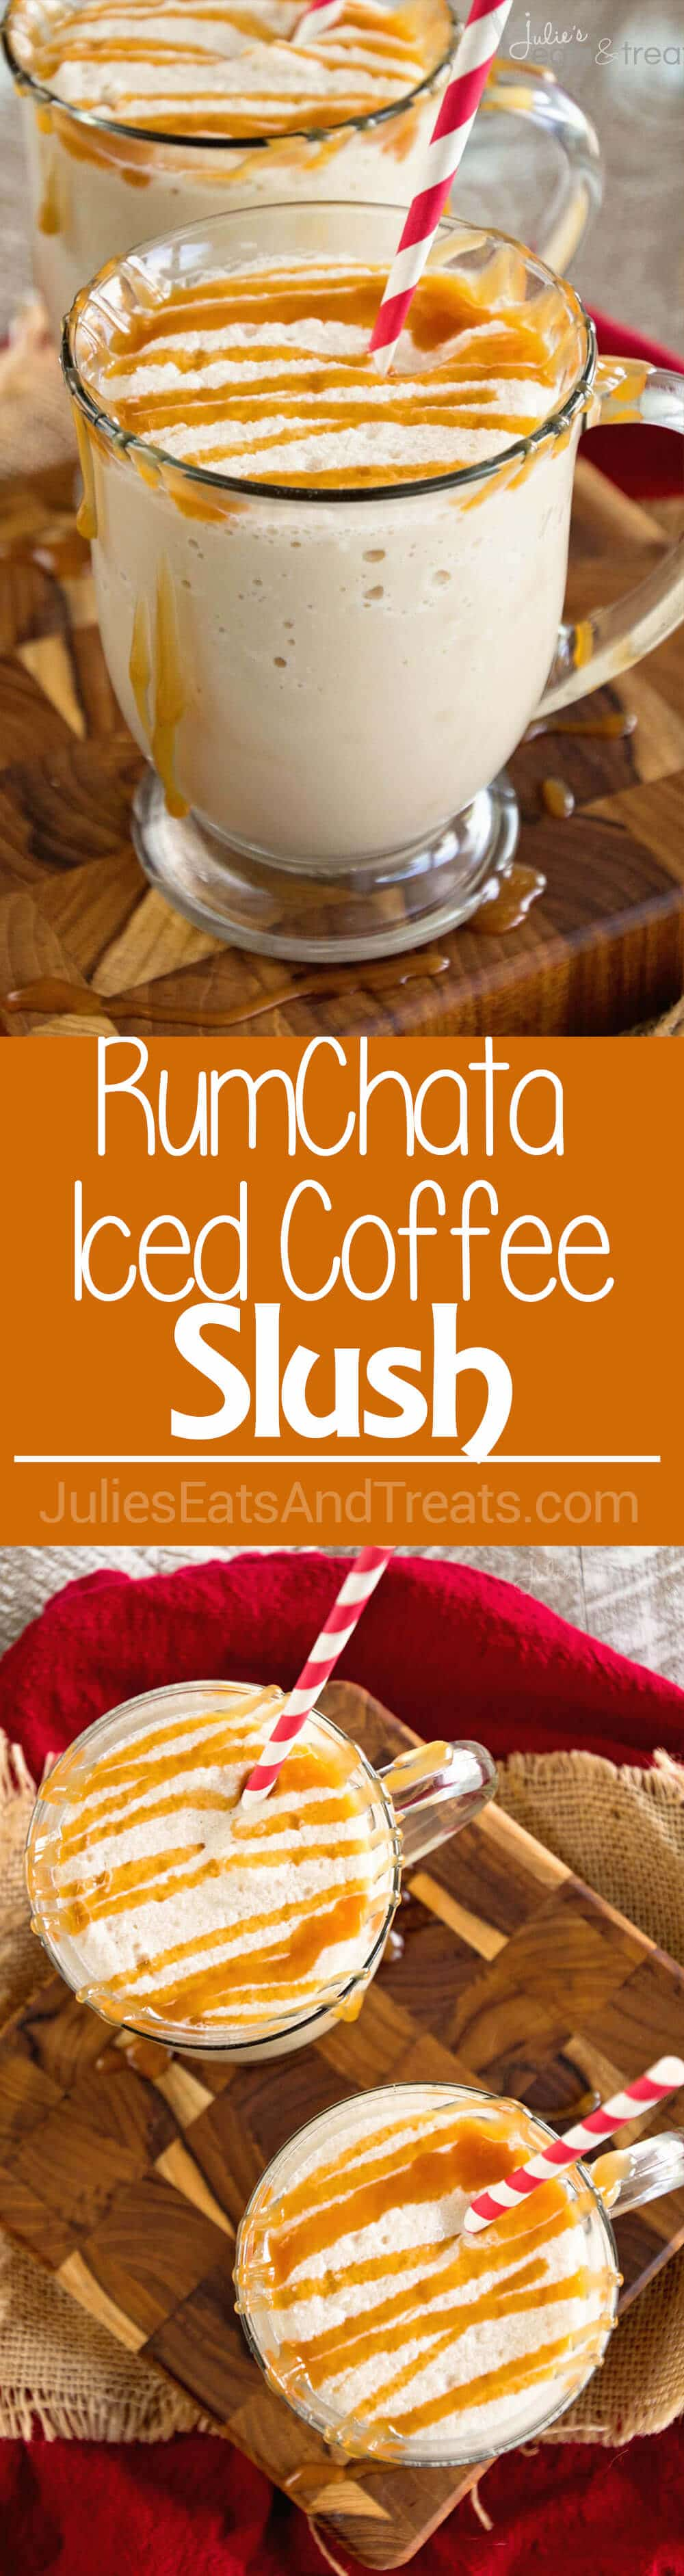 RumChata Iced Coffee Slush~ Your Favorite Ice Coffee Recipe Taken up a Notch with RumChata! Frozen to Perfection!